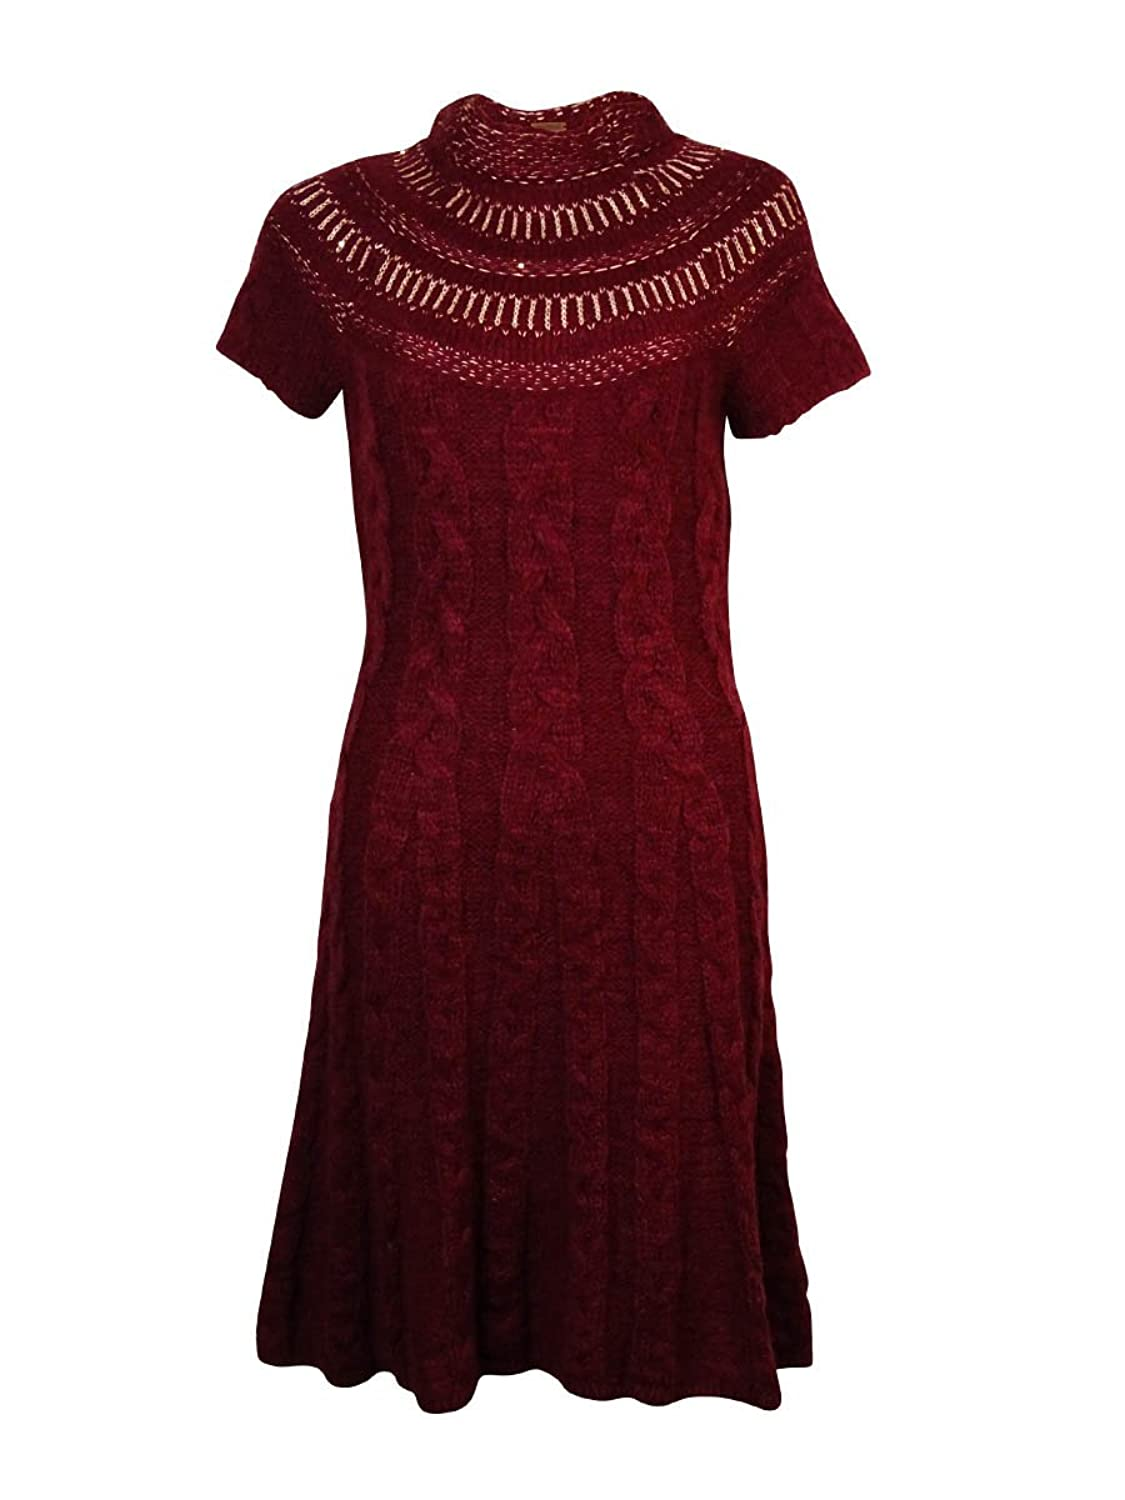 1940s Style Dresses and Clothing Free People Womens Nordic Nights Sweater Dress $109.99 AT vintagedancer.com